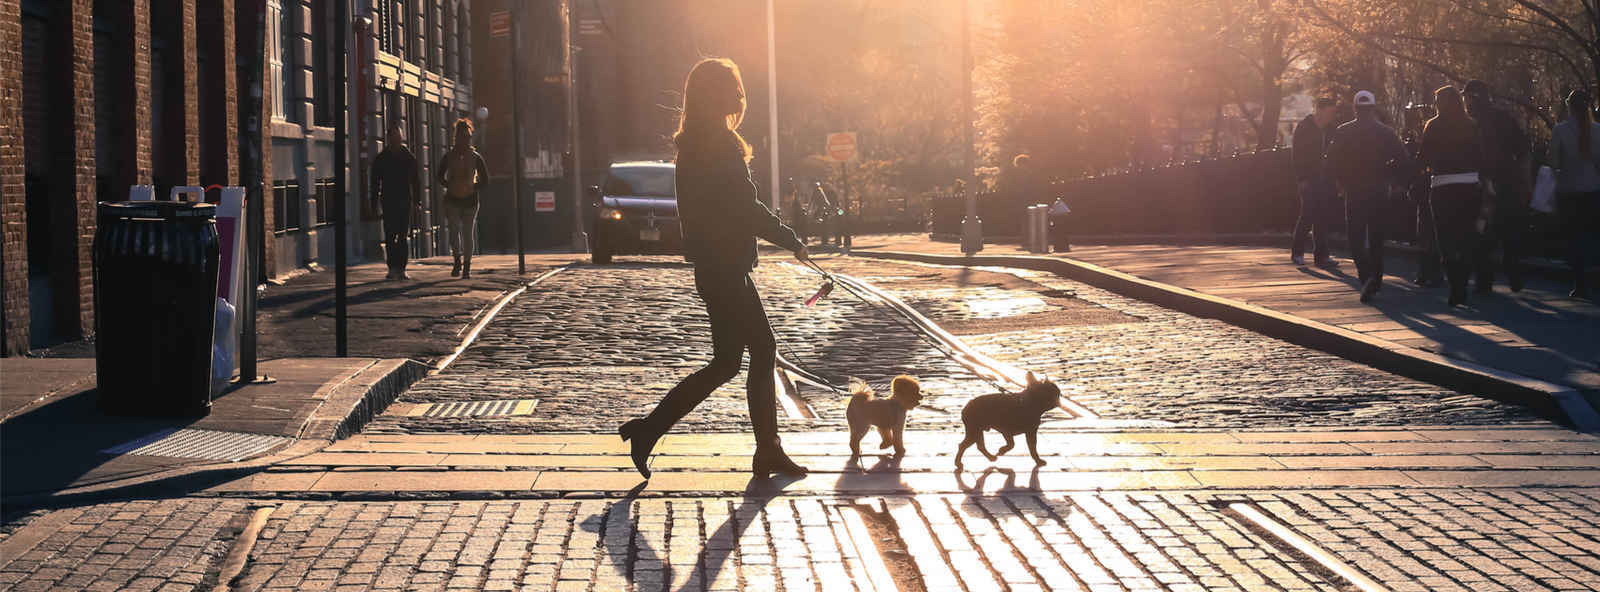 Woman walking dogs on a  cobblestone street in Dumbo, Brooklyn, NYC